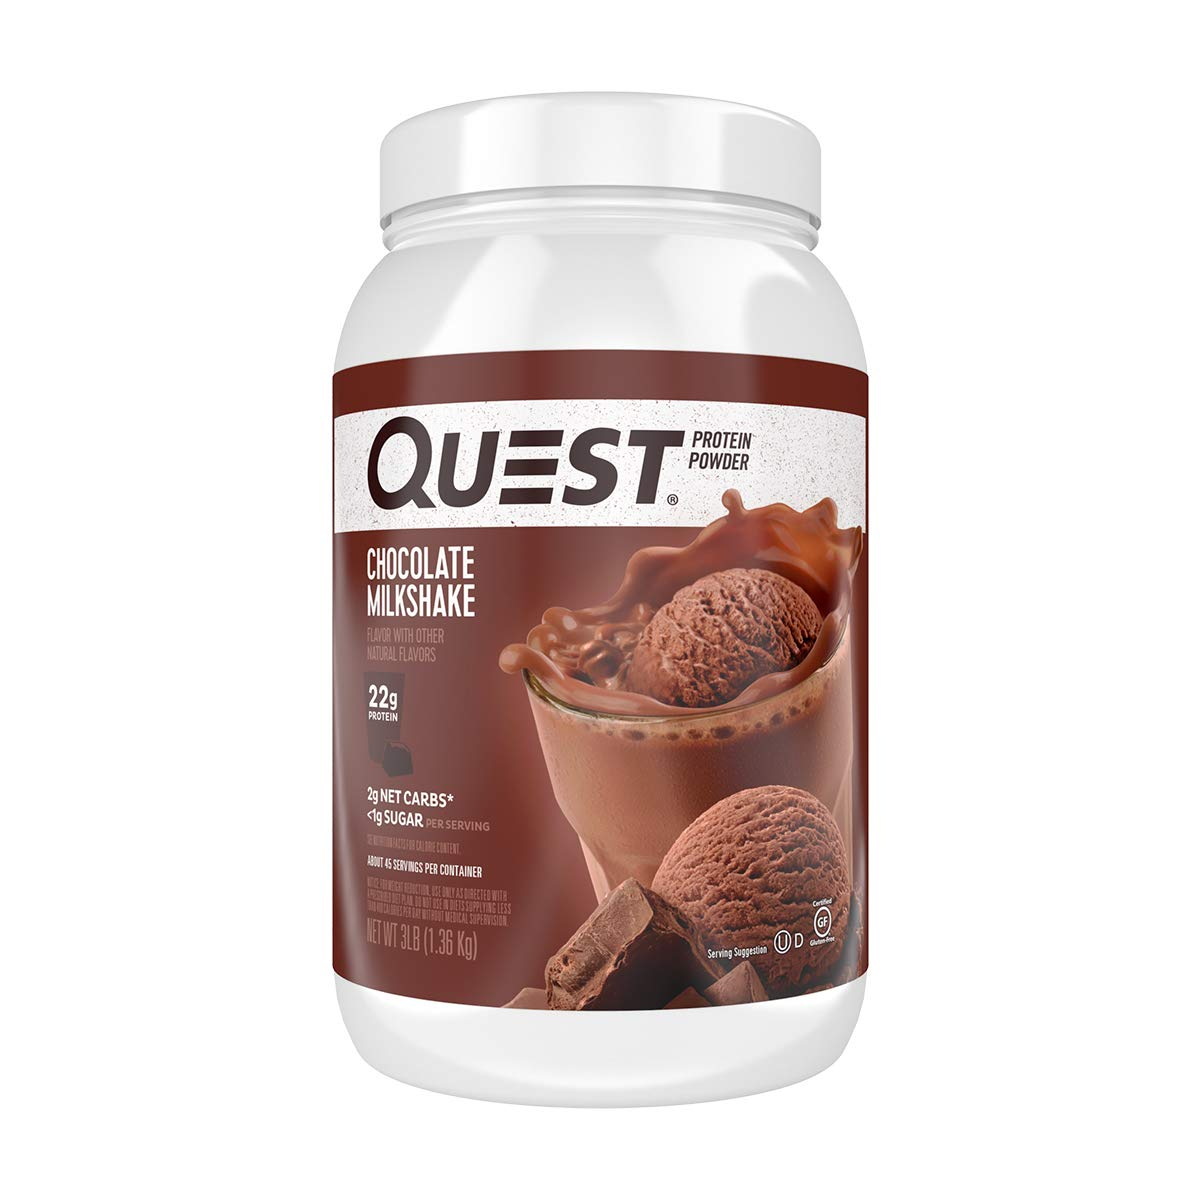 Quest Nutrition Chocolate Milkshake Protein Powder, High Protein, Low Carb, Gluten Free, Soy Free, 3 Pound